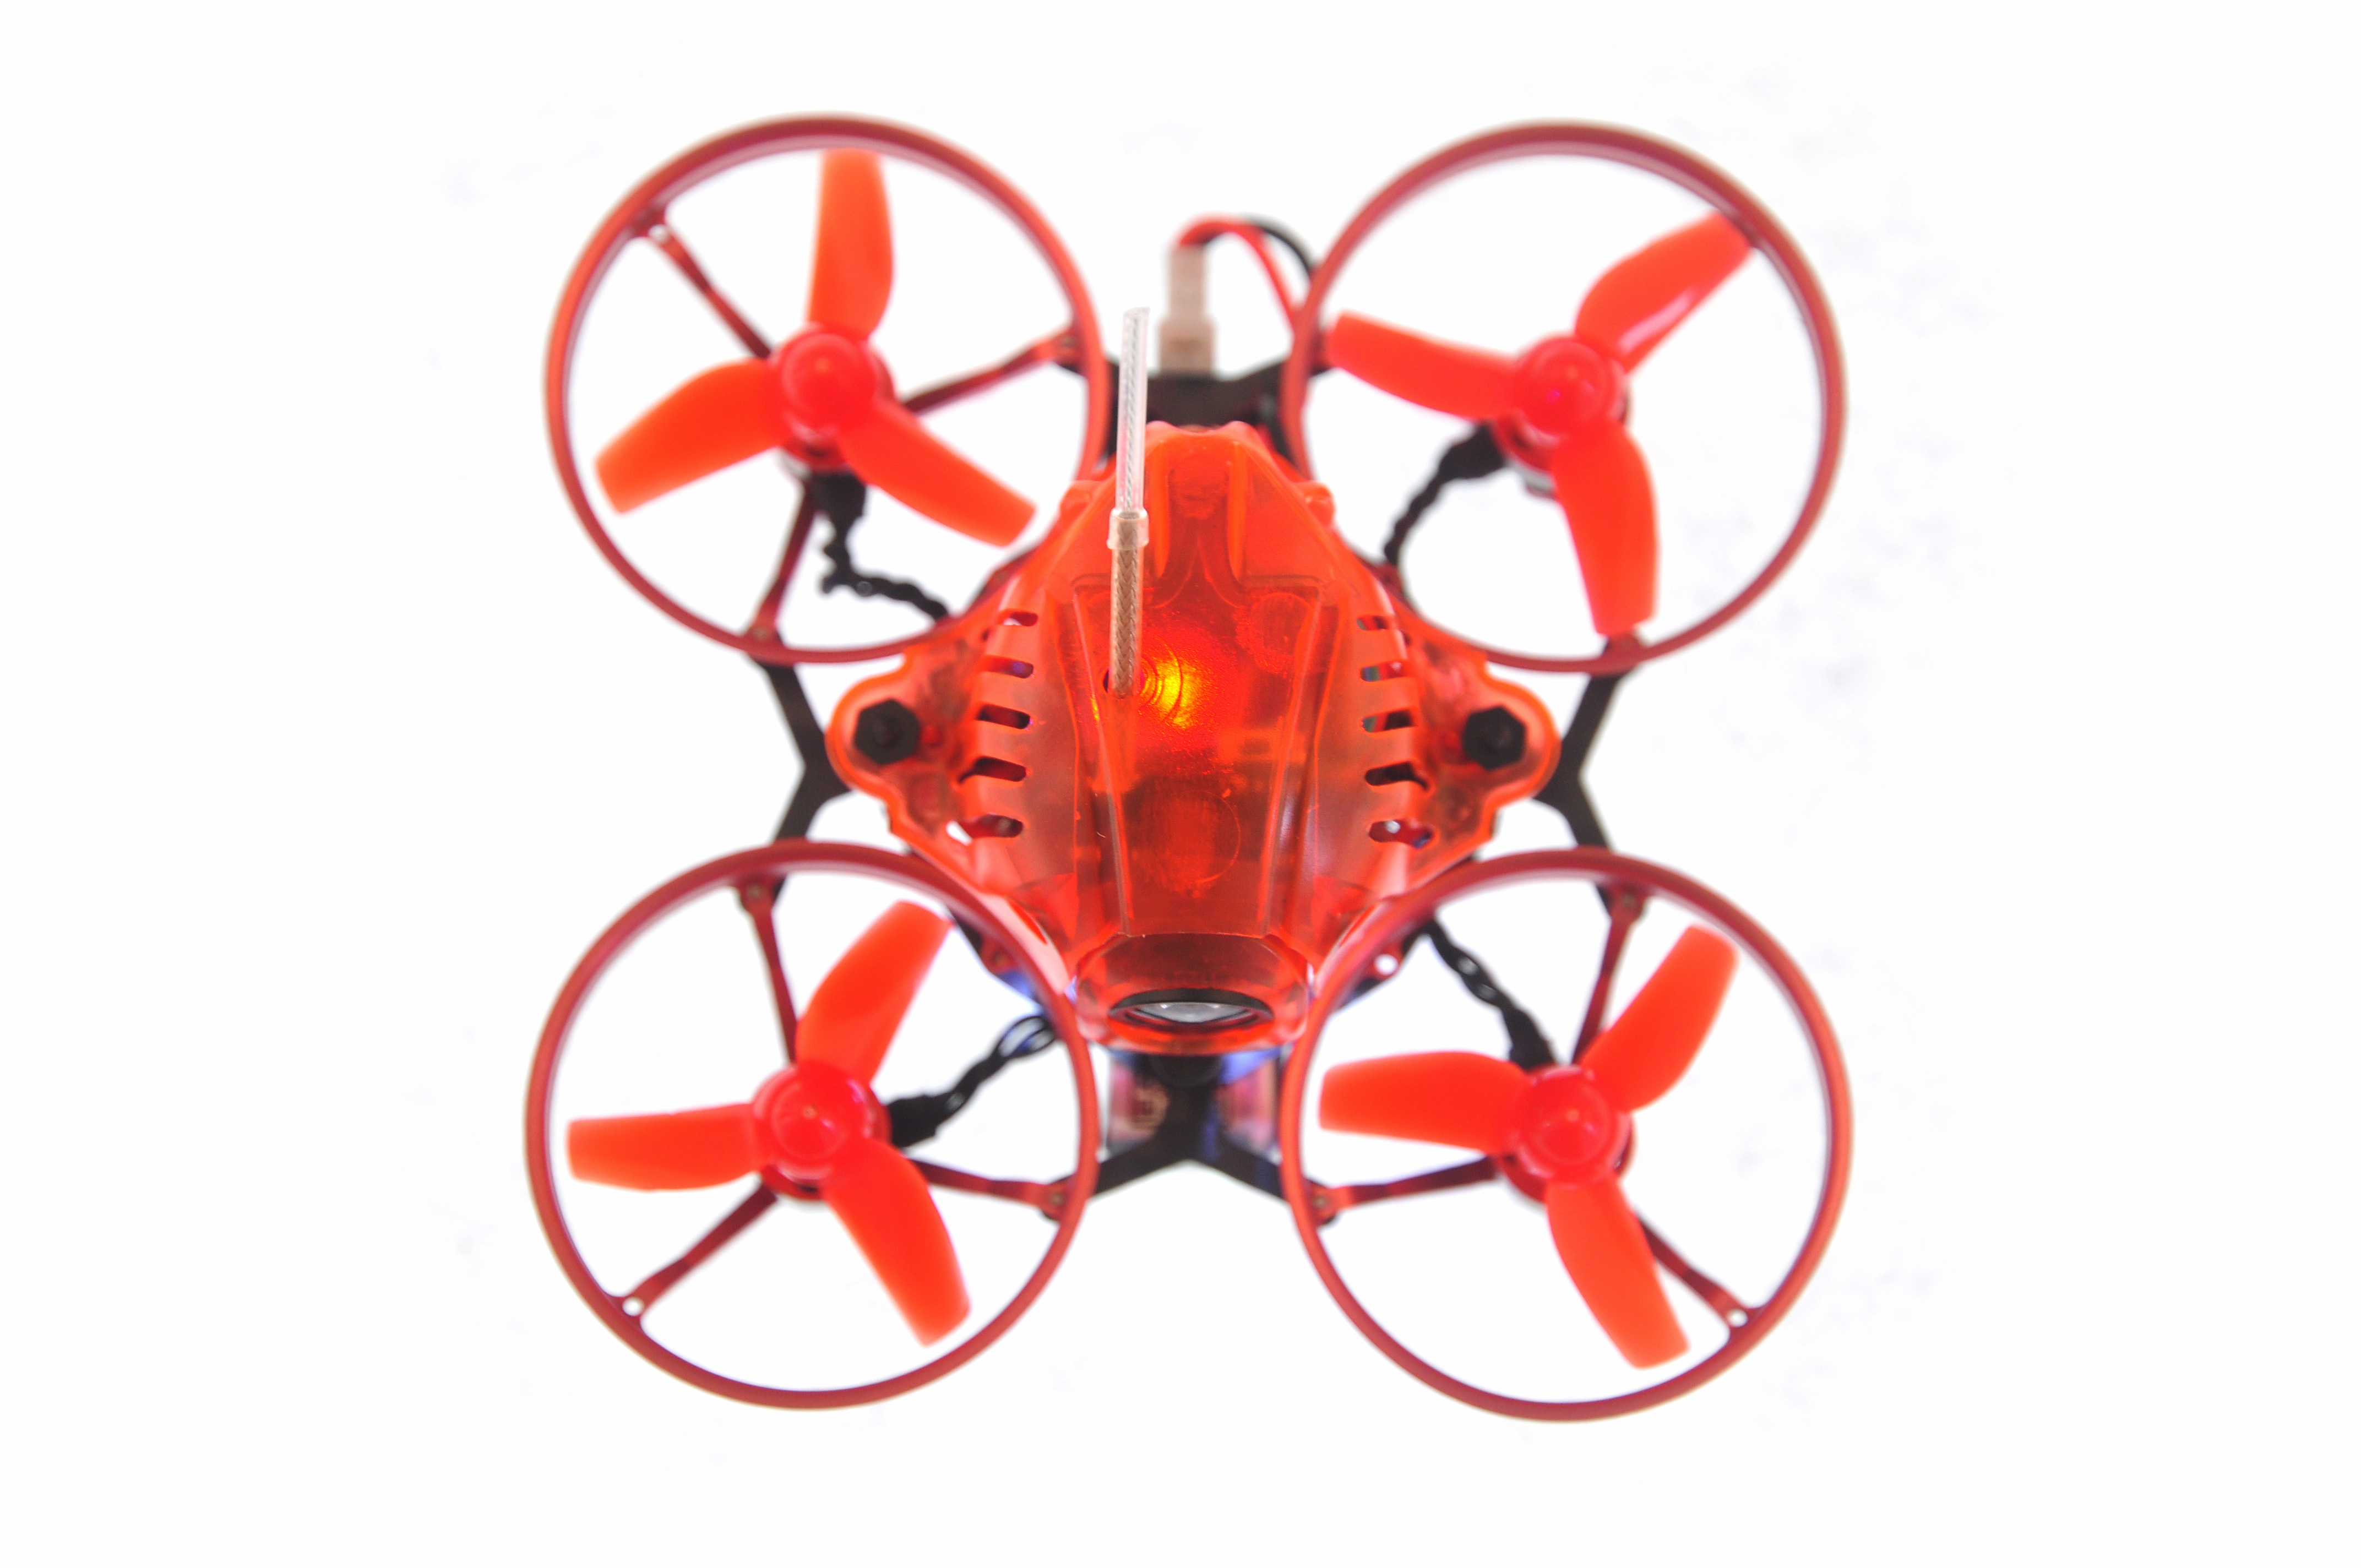 купить JMT Snapper6 1S Brushless Whoop Racer Airplanes BNF 5.8G 48CH 700TVL Camera F3 Built-in OSD 65mm Micro FPV Racing RC Hexacopter онлайн